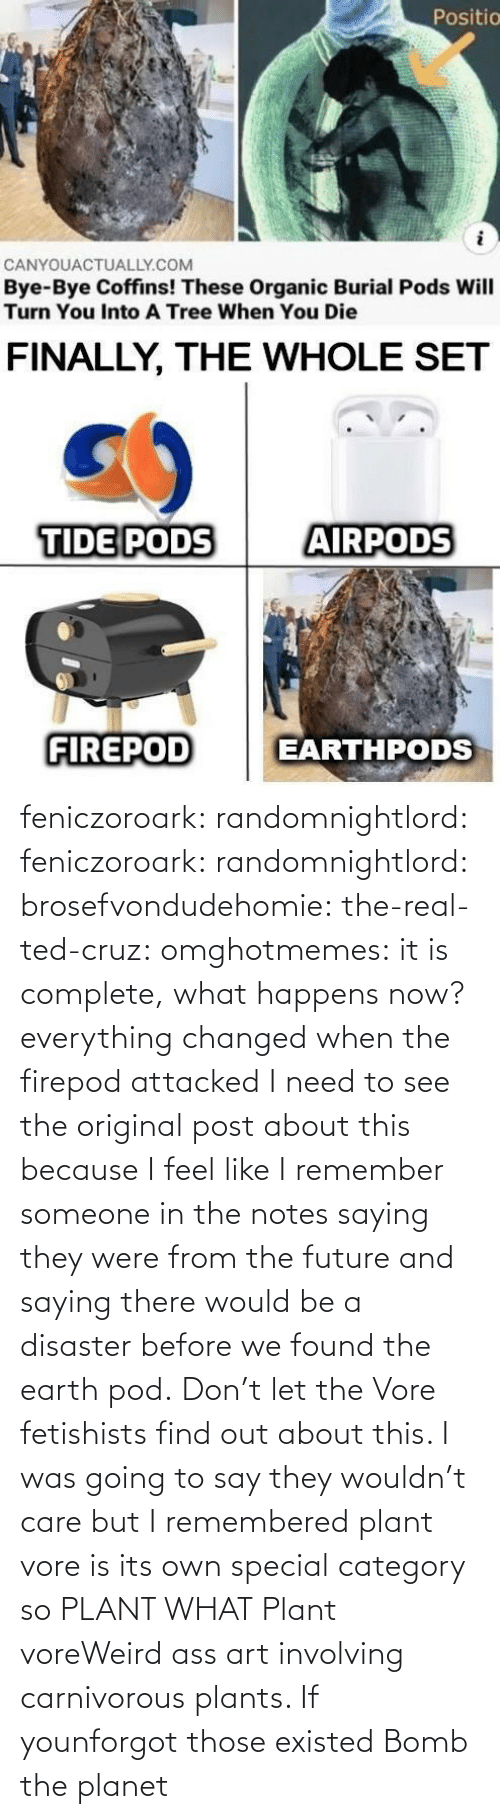 plants: feniczoroark:  randomnightlord:  feniczoroark:  randomnightlord:  brosefvondudehomie: the-real-ted-cruz:  omghotmemes: it is complete, what happens now? everything changed when the firepod attacked    I need to see the original post about this because I feel like I remember someone in the notes saying they were from the future and saying there would be a disaster before we found the earth pod.    Don't let the Vore fetishists find out about this.    I was going to say they wouldn't care but I remembered plant vore is its own special category so   PLANT WHAT   Plant voreWeird ass art involving carnivorous plants. If younforgot those existed   Bomb the planet